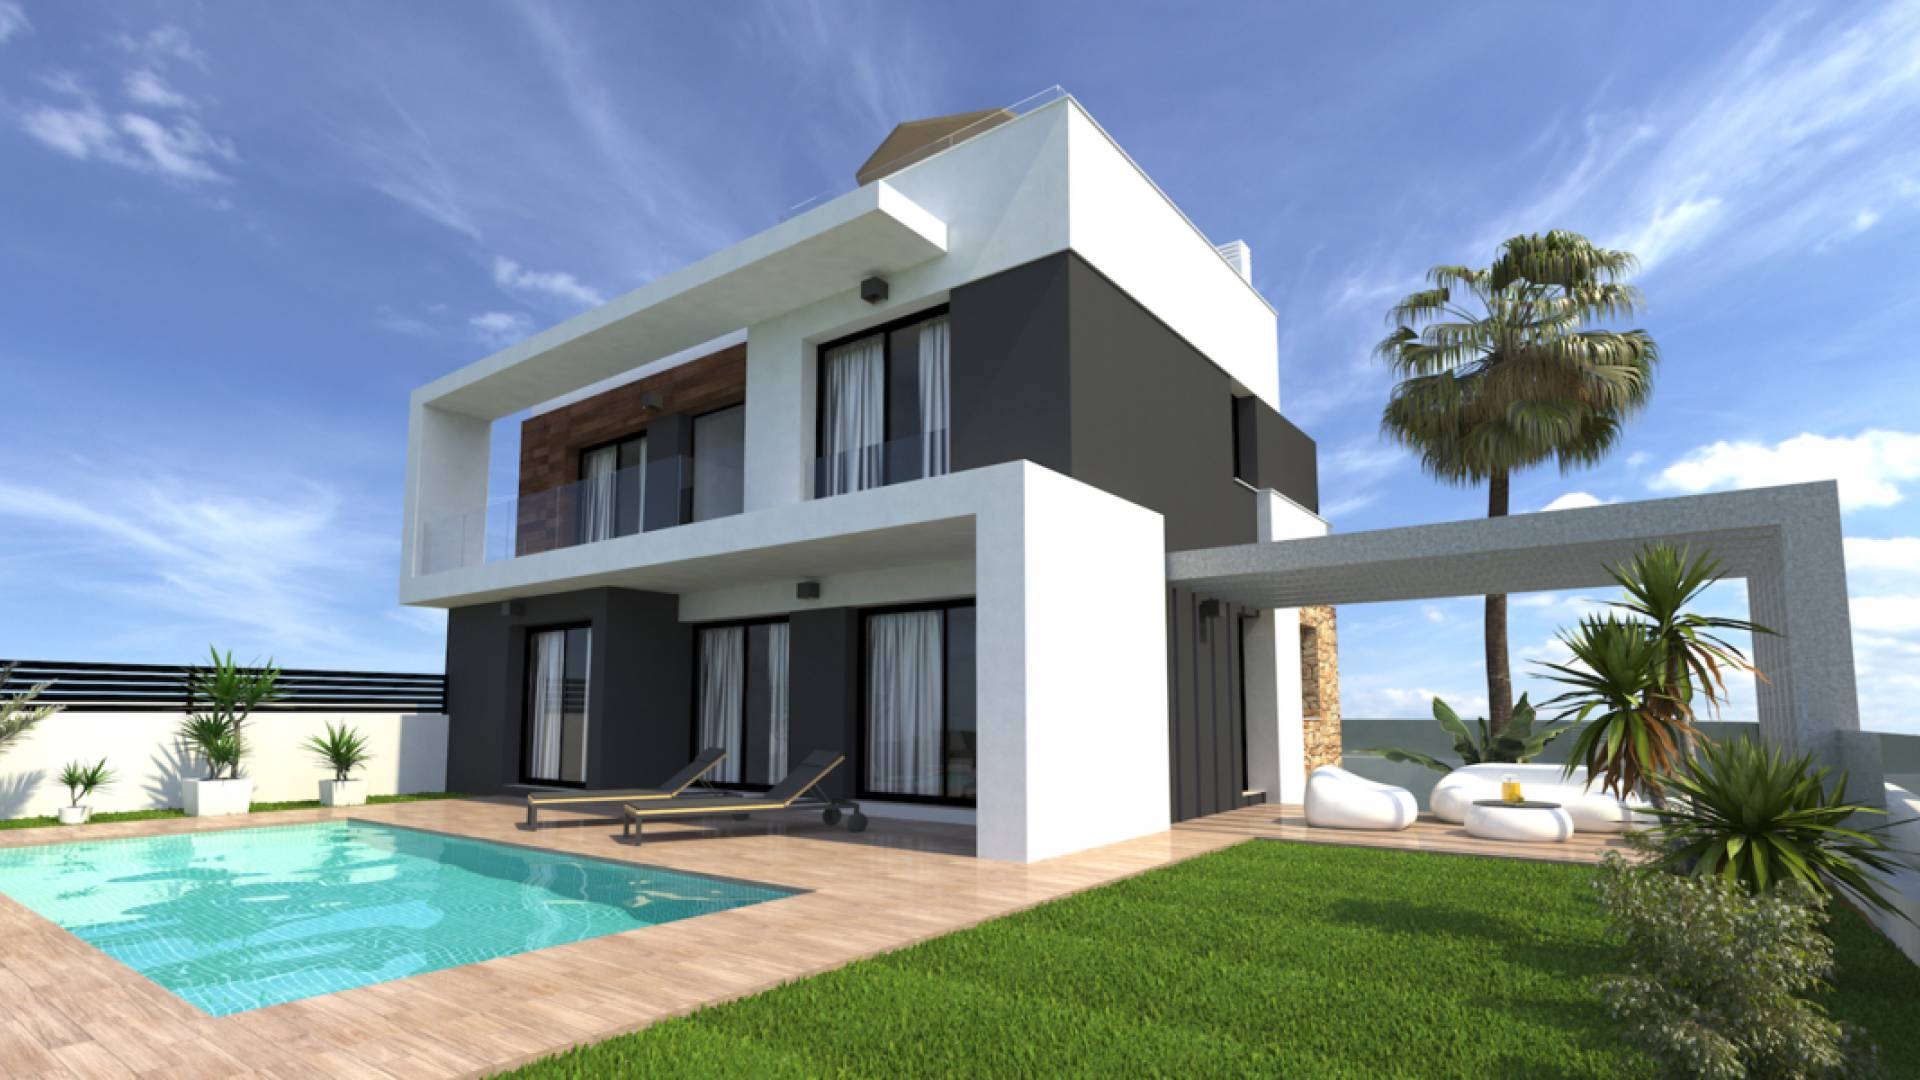 New Build - Villa - Orihuela Costa - Cabo roig - La Zenia